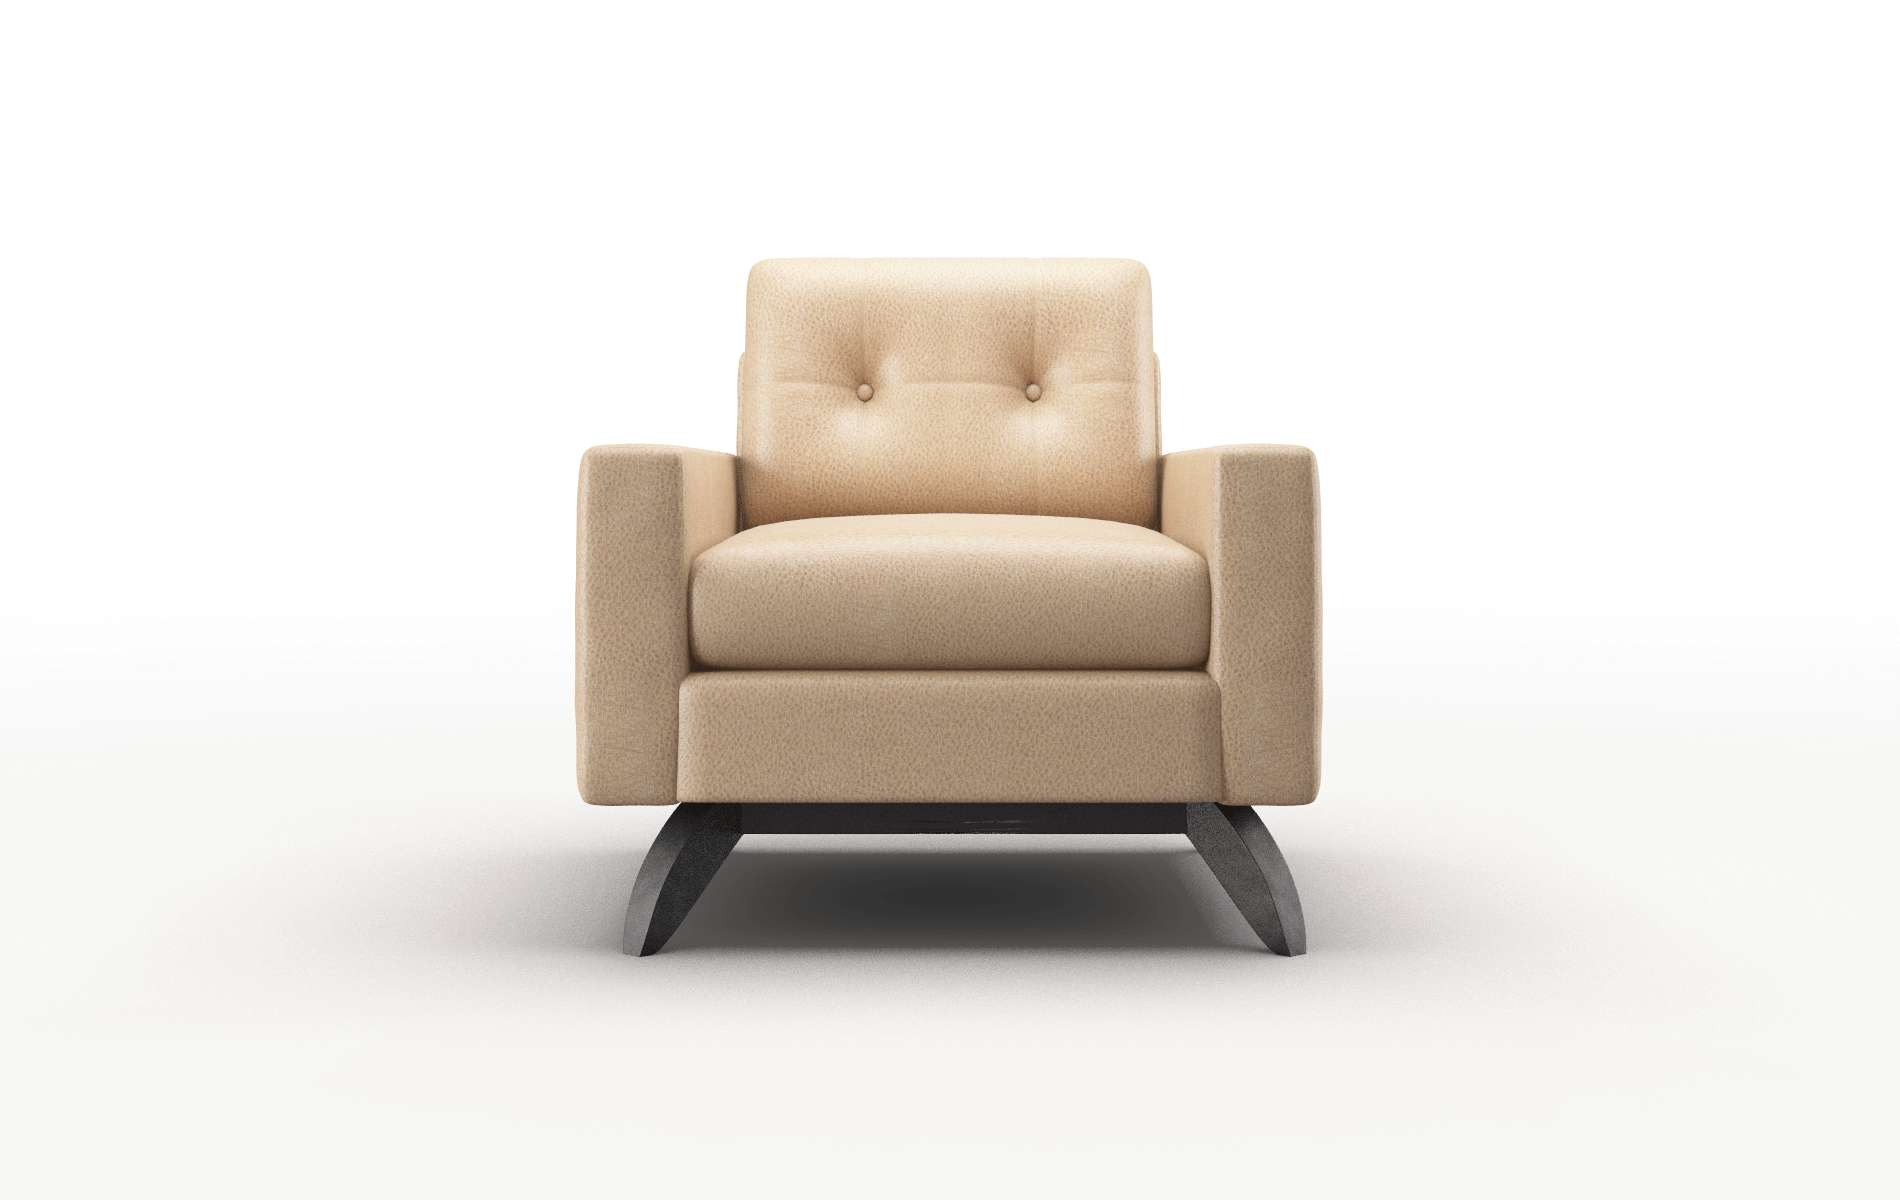 Milan Ford Dune chair espresso legs